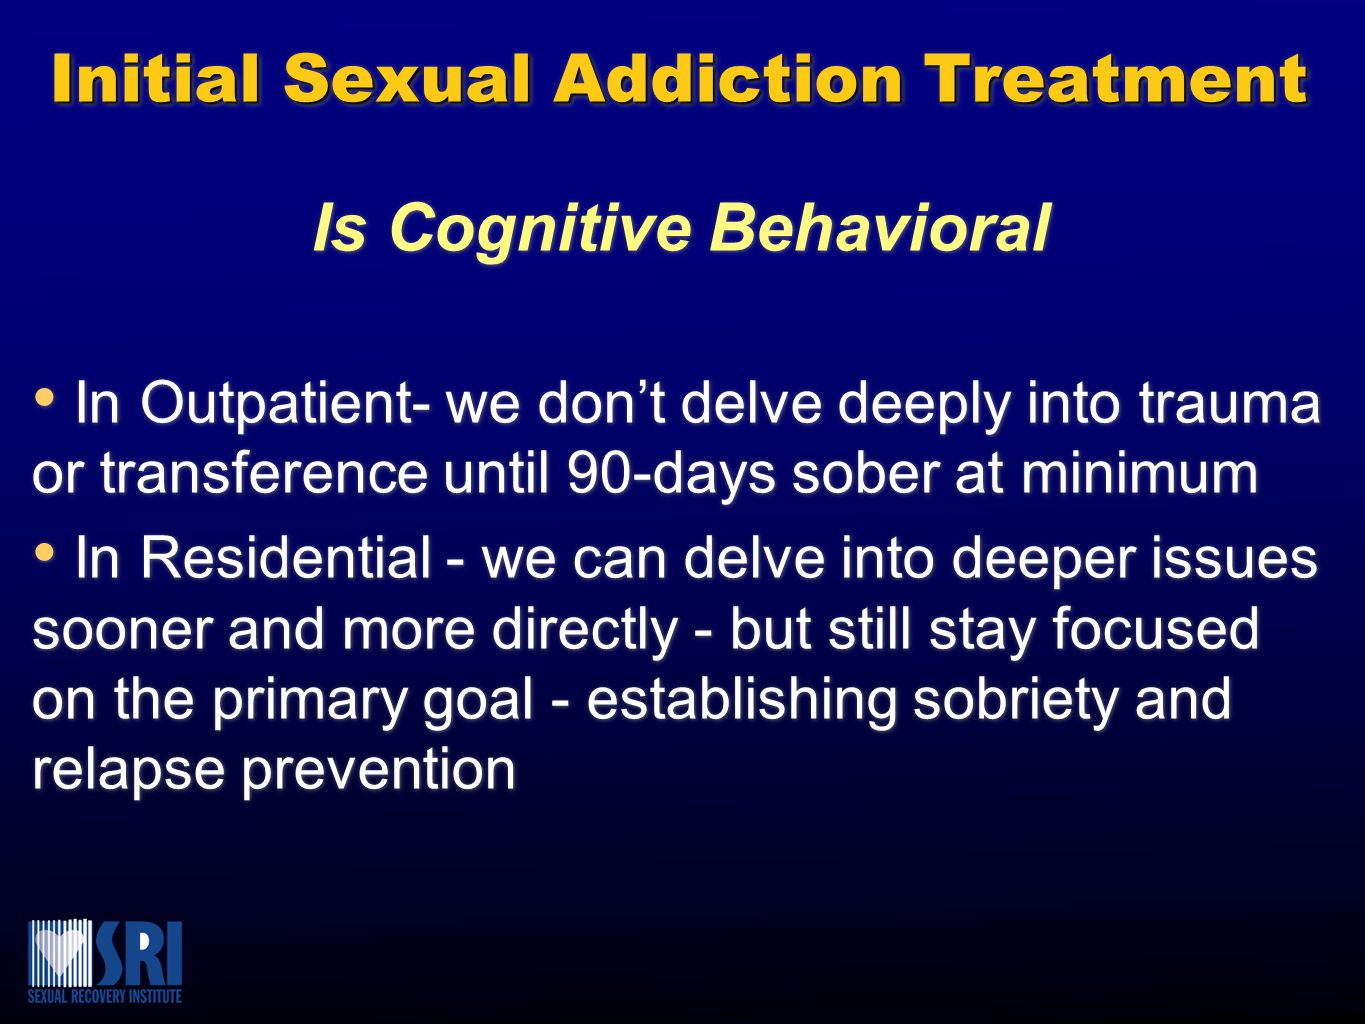 Initial Sexual Addiction Treatment